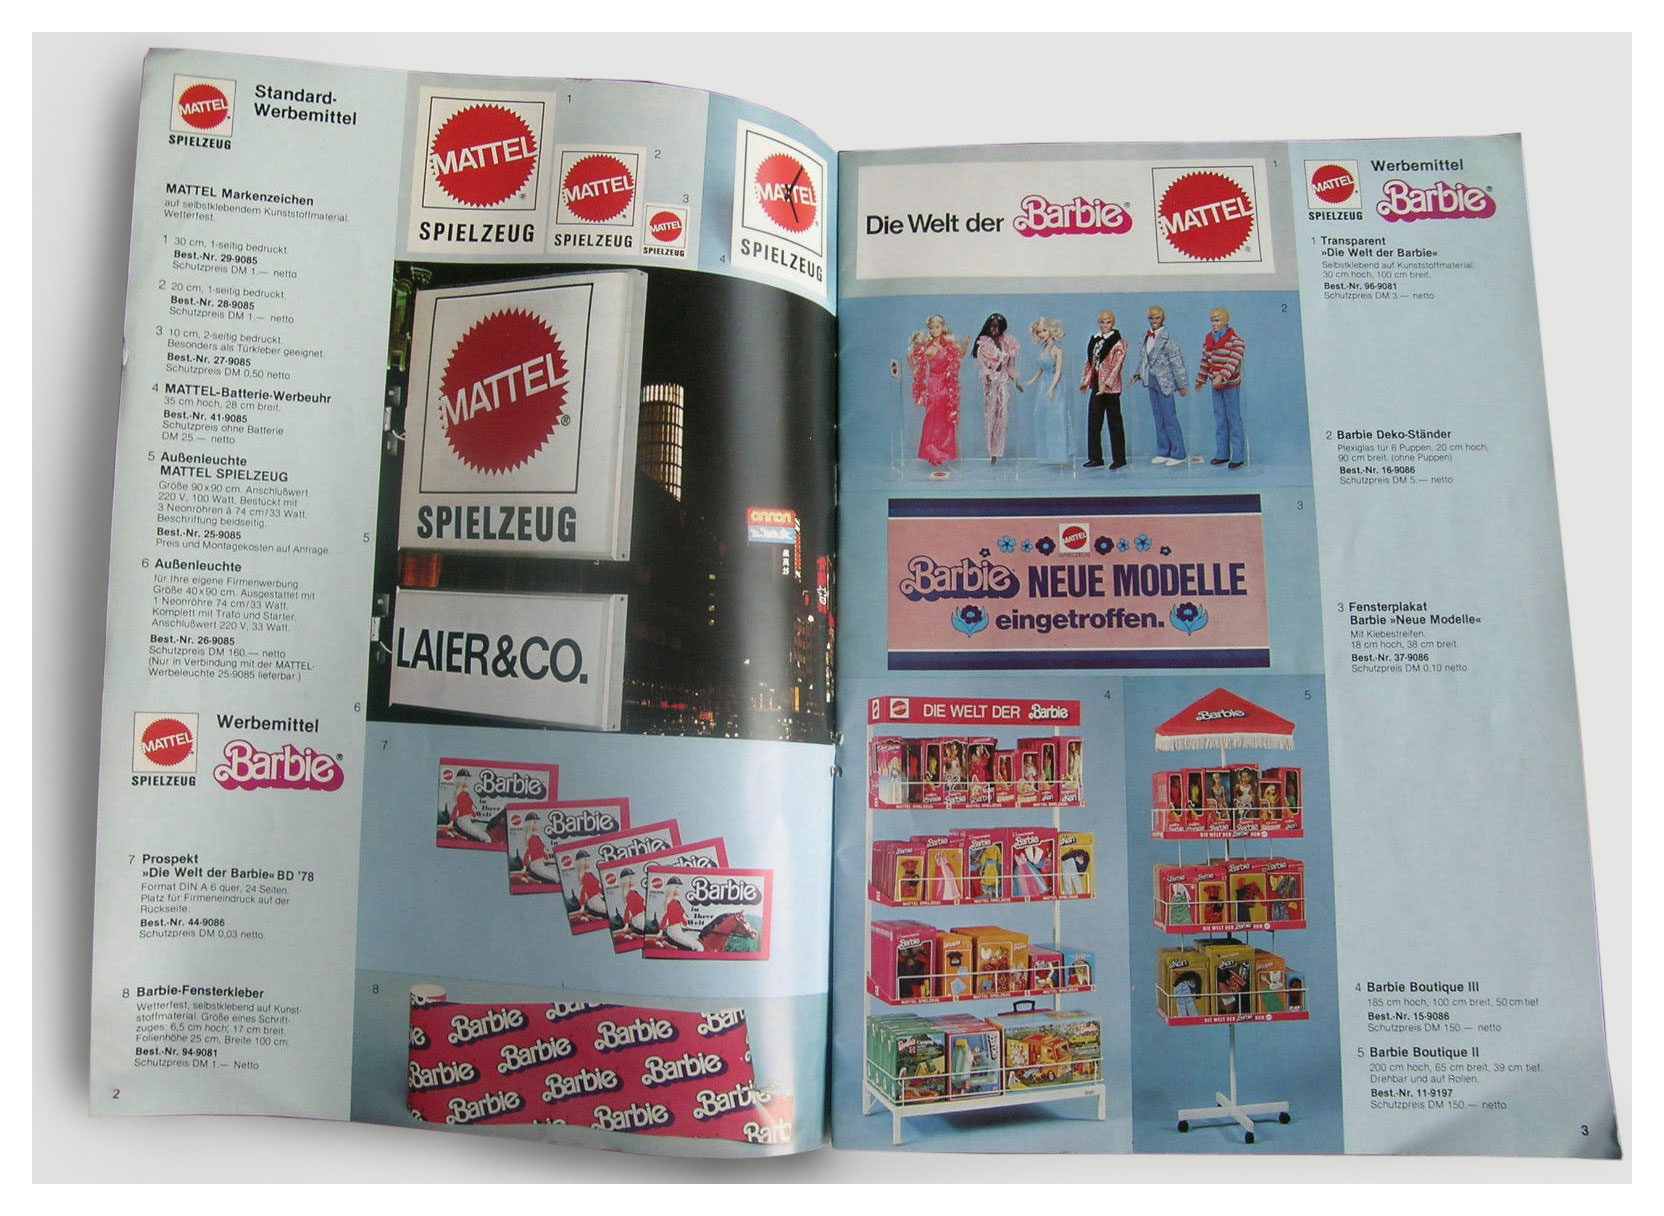 1978 Mattel German Werbemittel catalogue